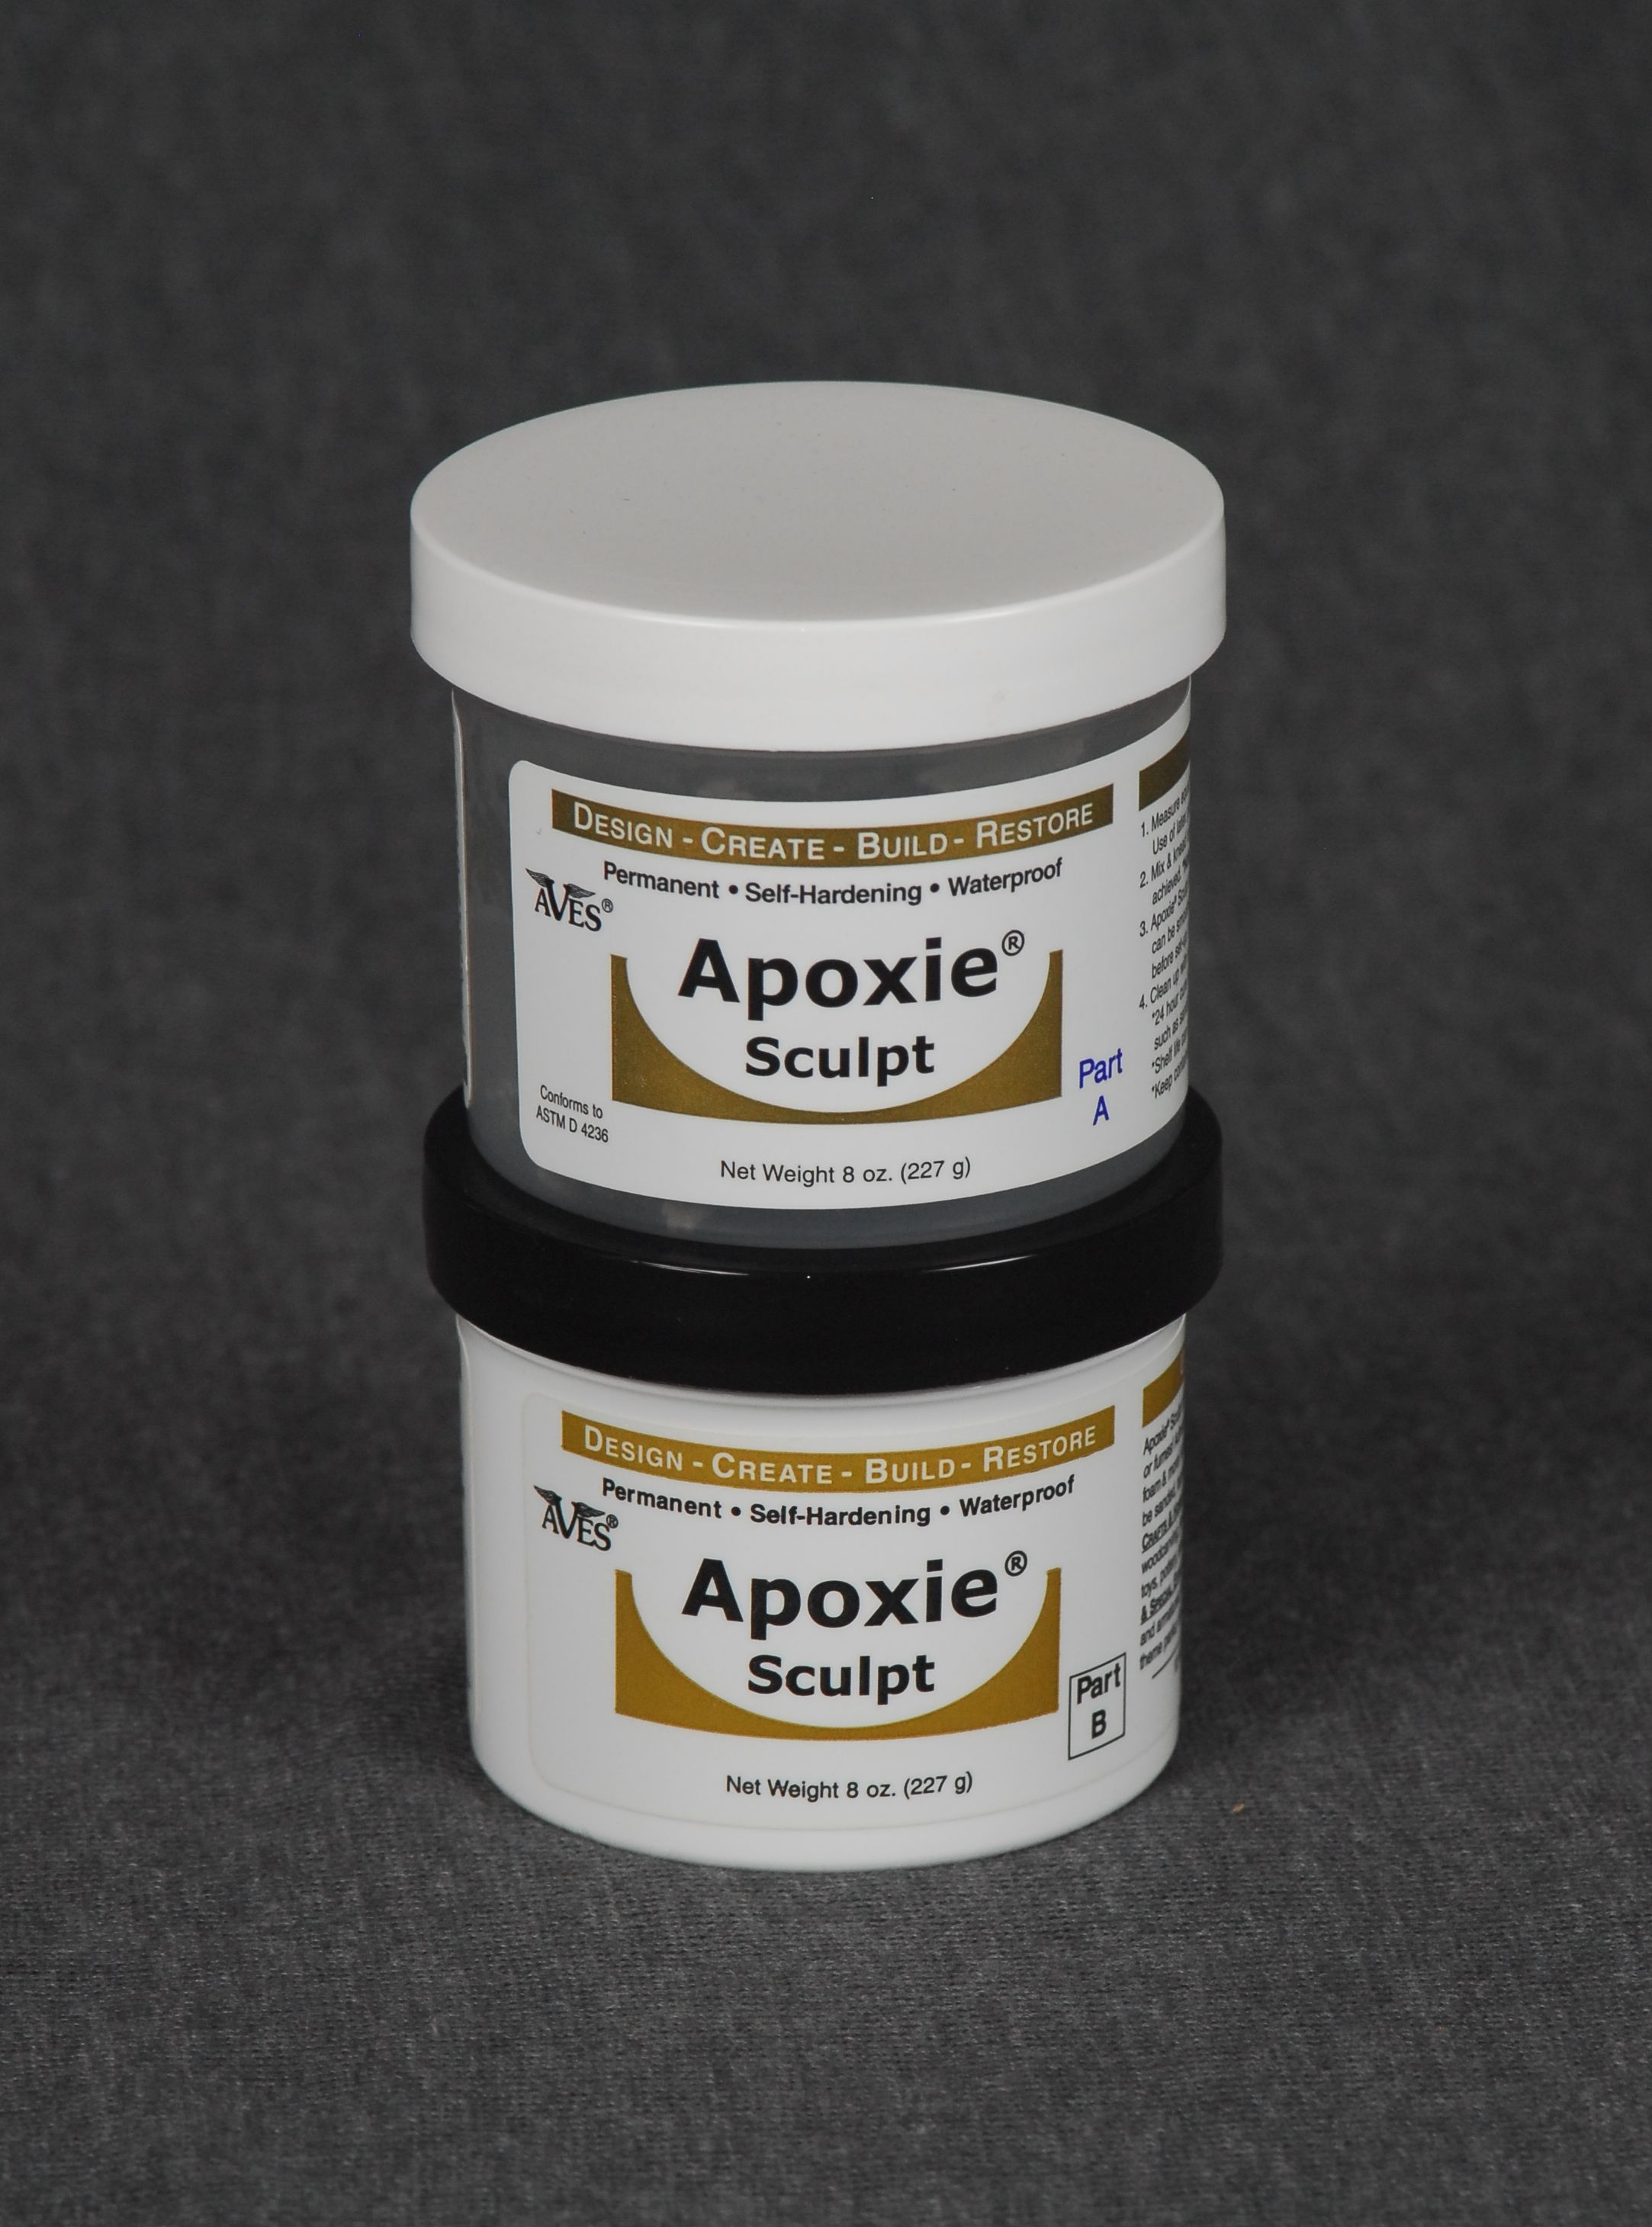 Apoxie Sculpt 1 lb black